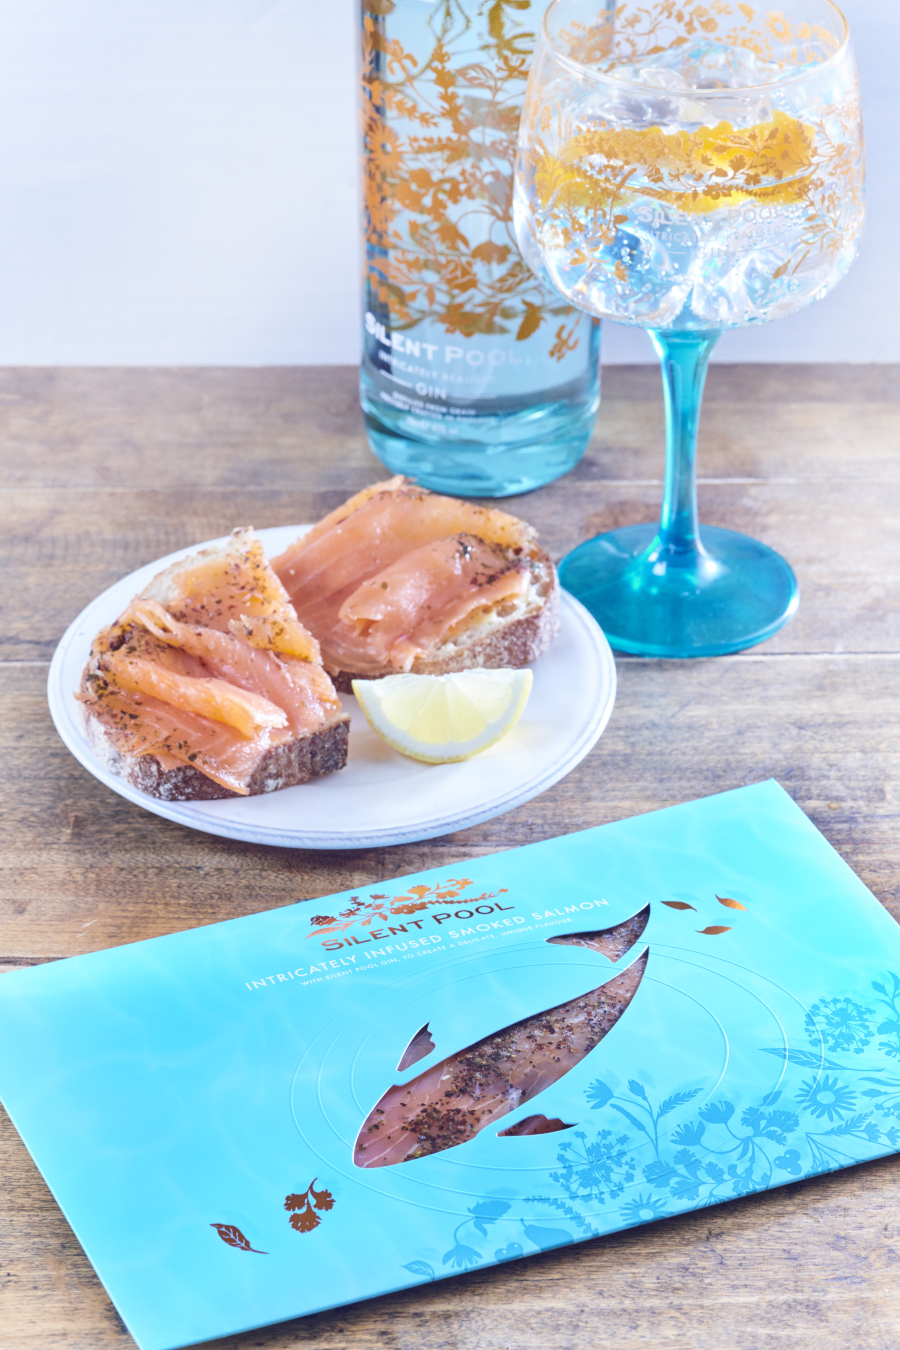 silent pool gin infused smoked salmon